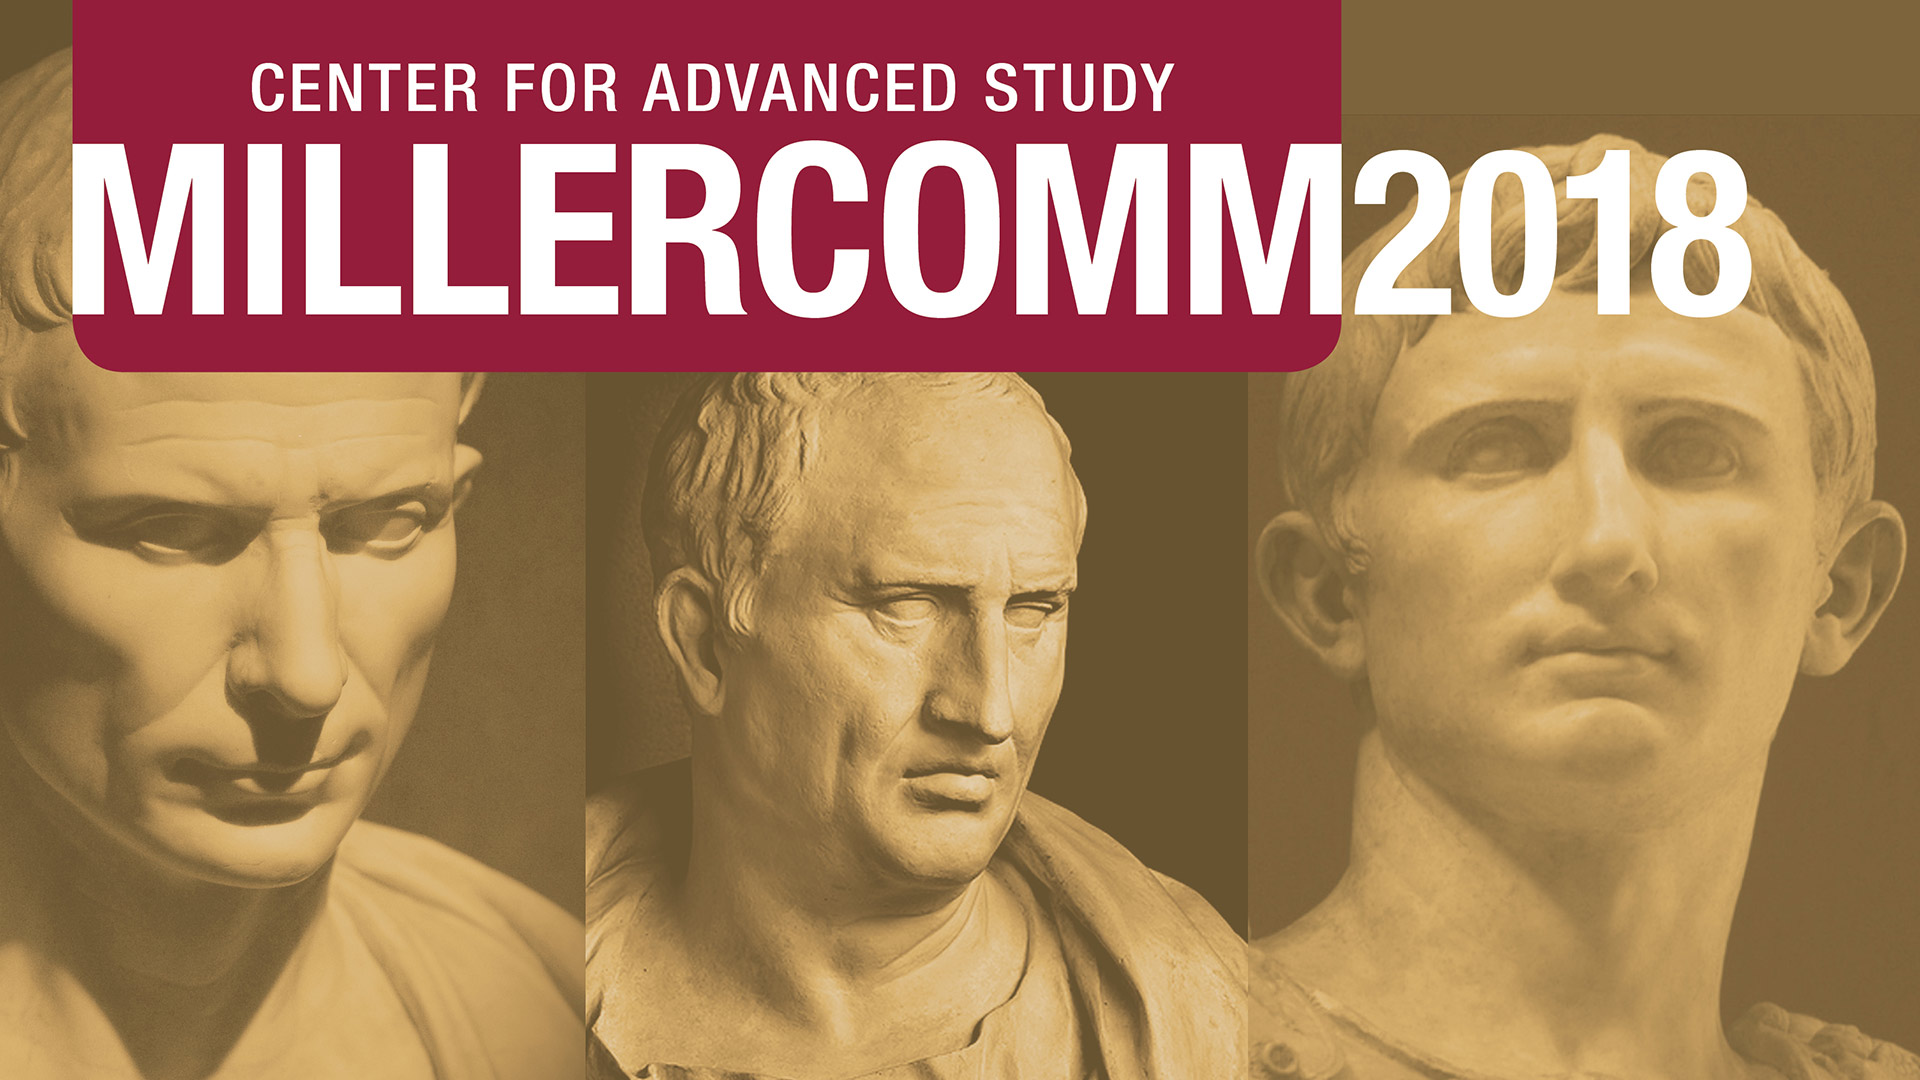 Center for Advanced Study Millercomm 2018. Headshots of three statues of men.